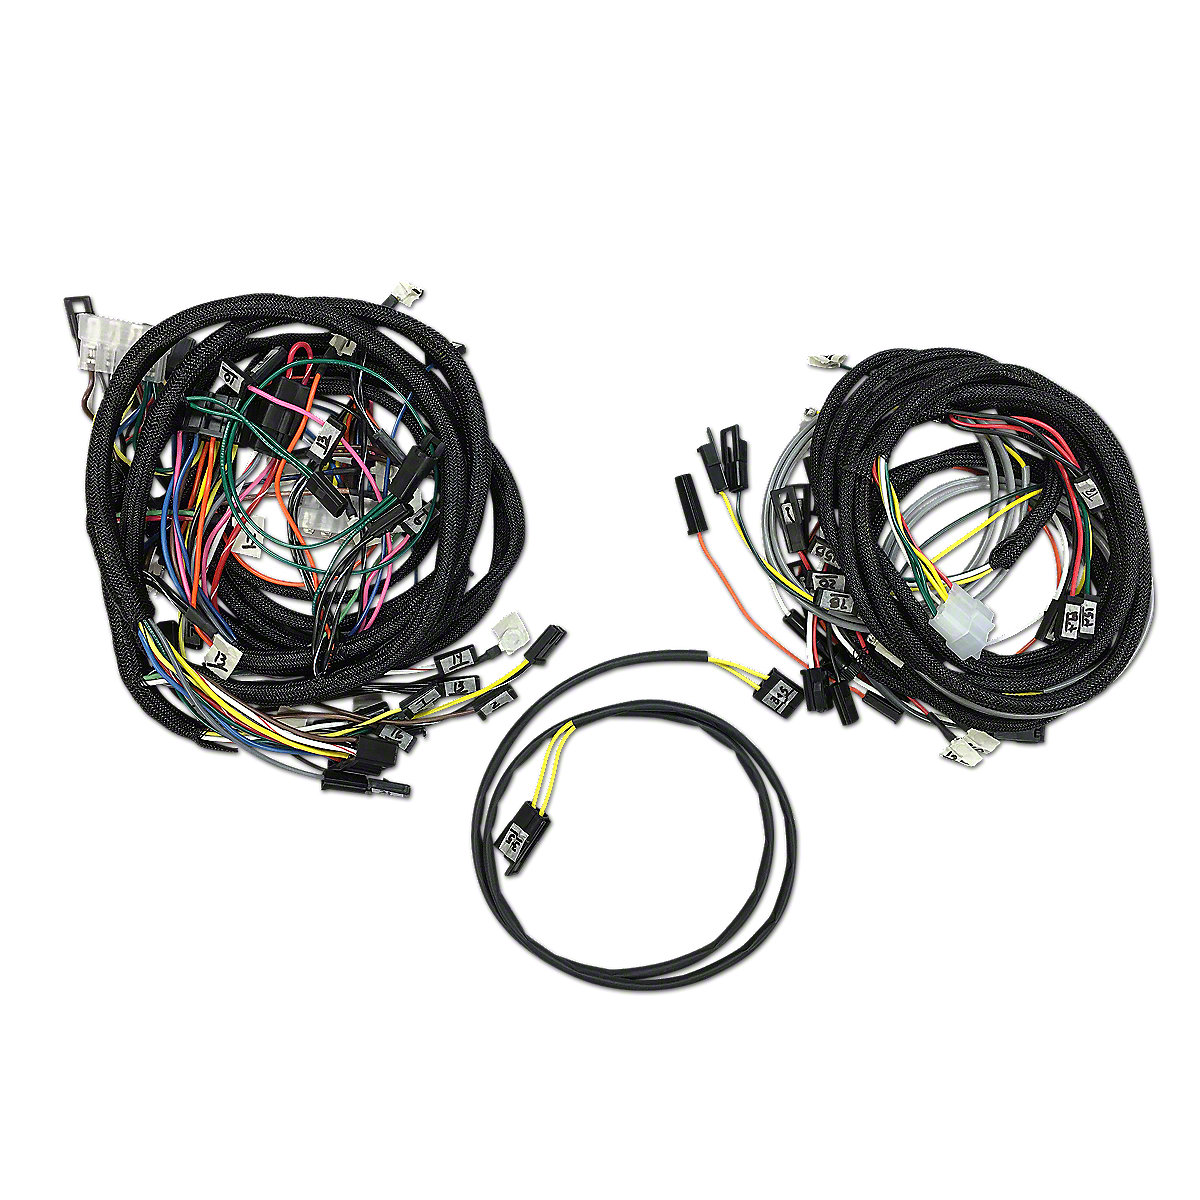 Restoration Quality Wiring Harness Jds3606 Mf 240